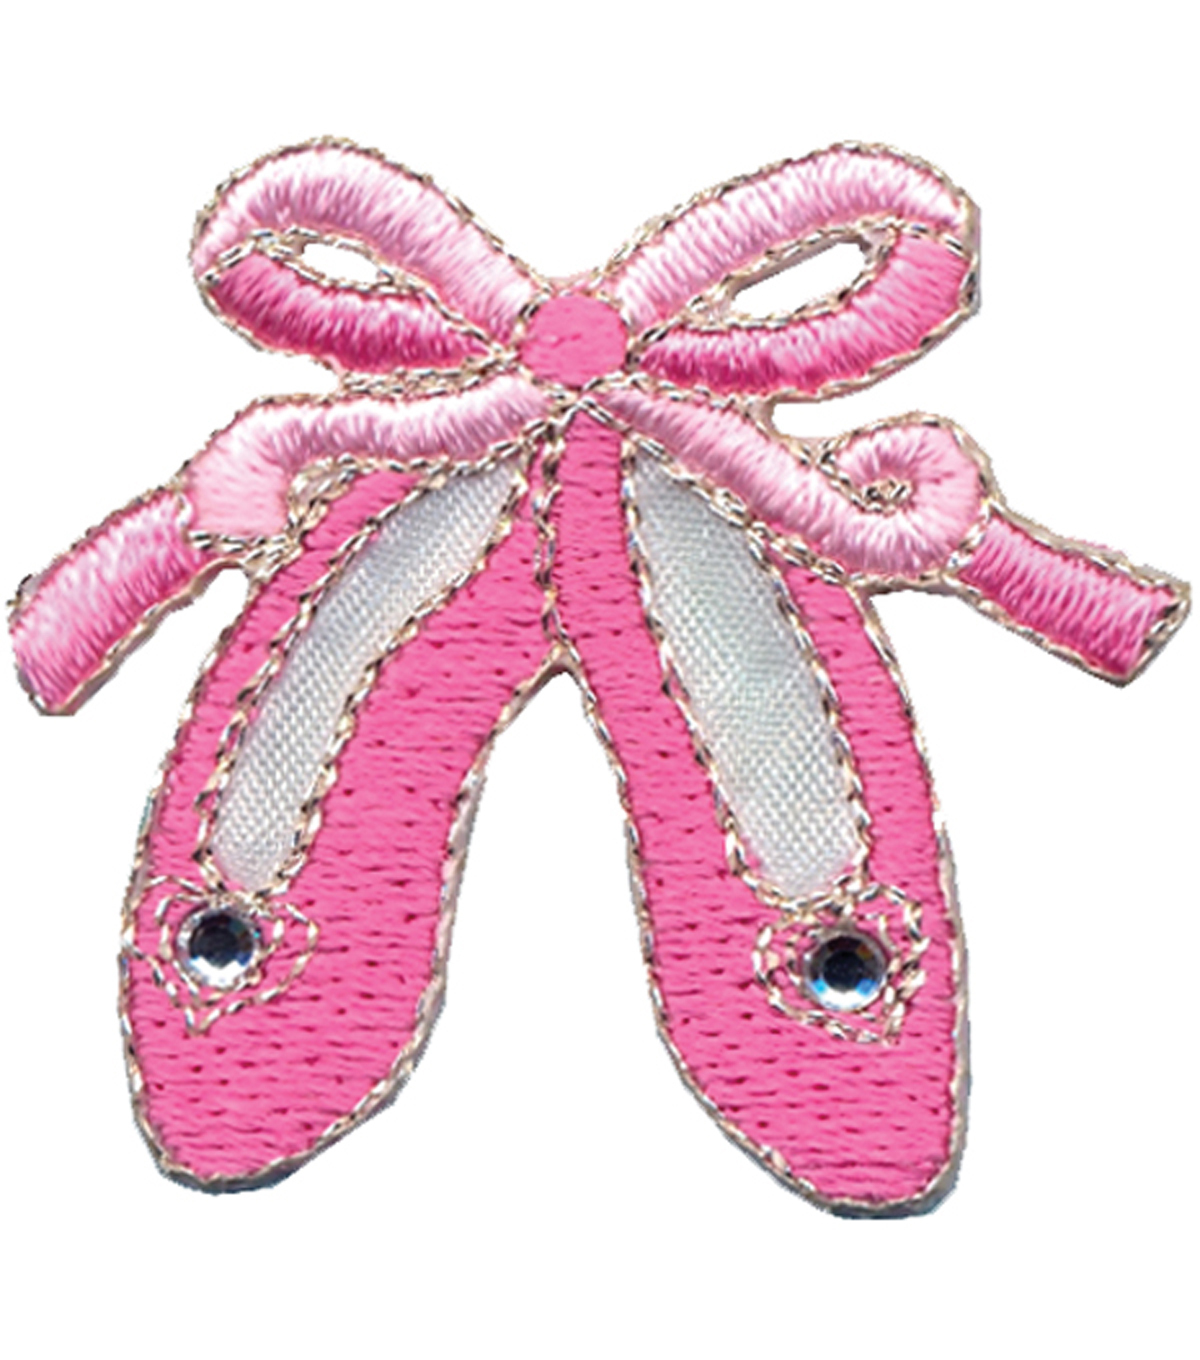 Wrights Iron-On Appliques-Pink Ballet Slippers 1-1/2\u0022X1-1/2\u0022 1/Pkg